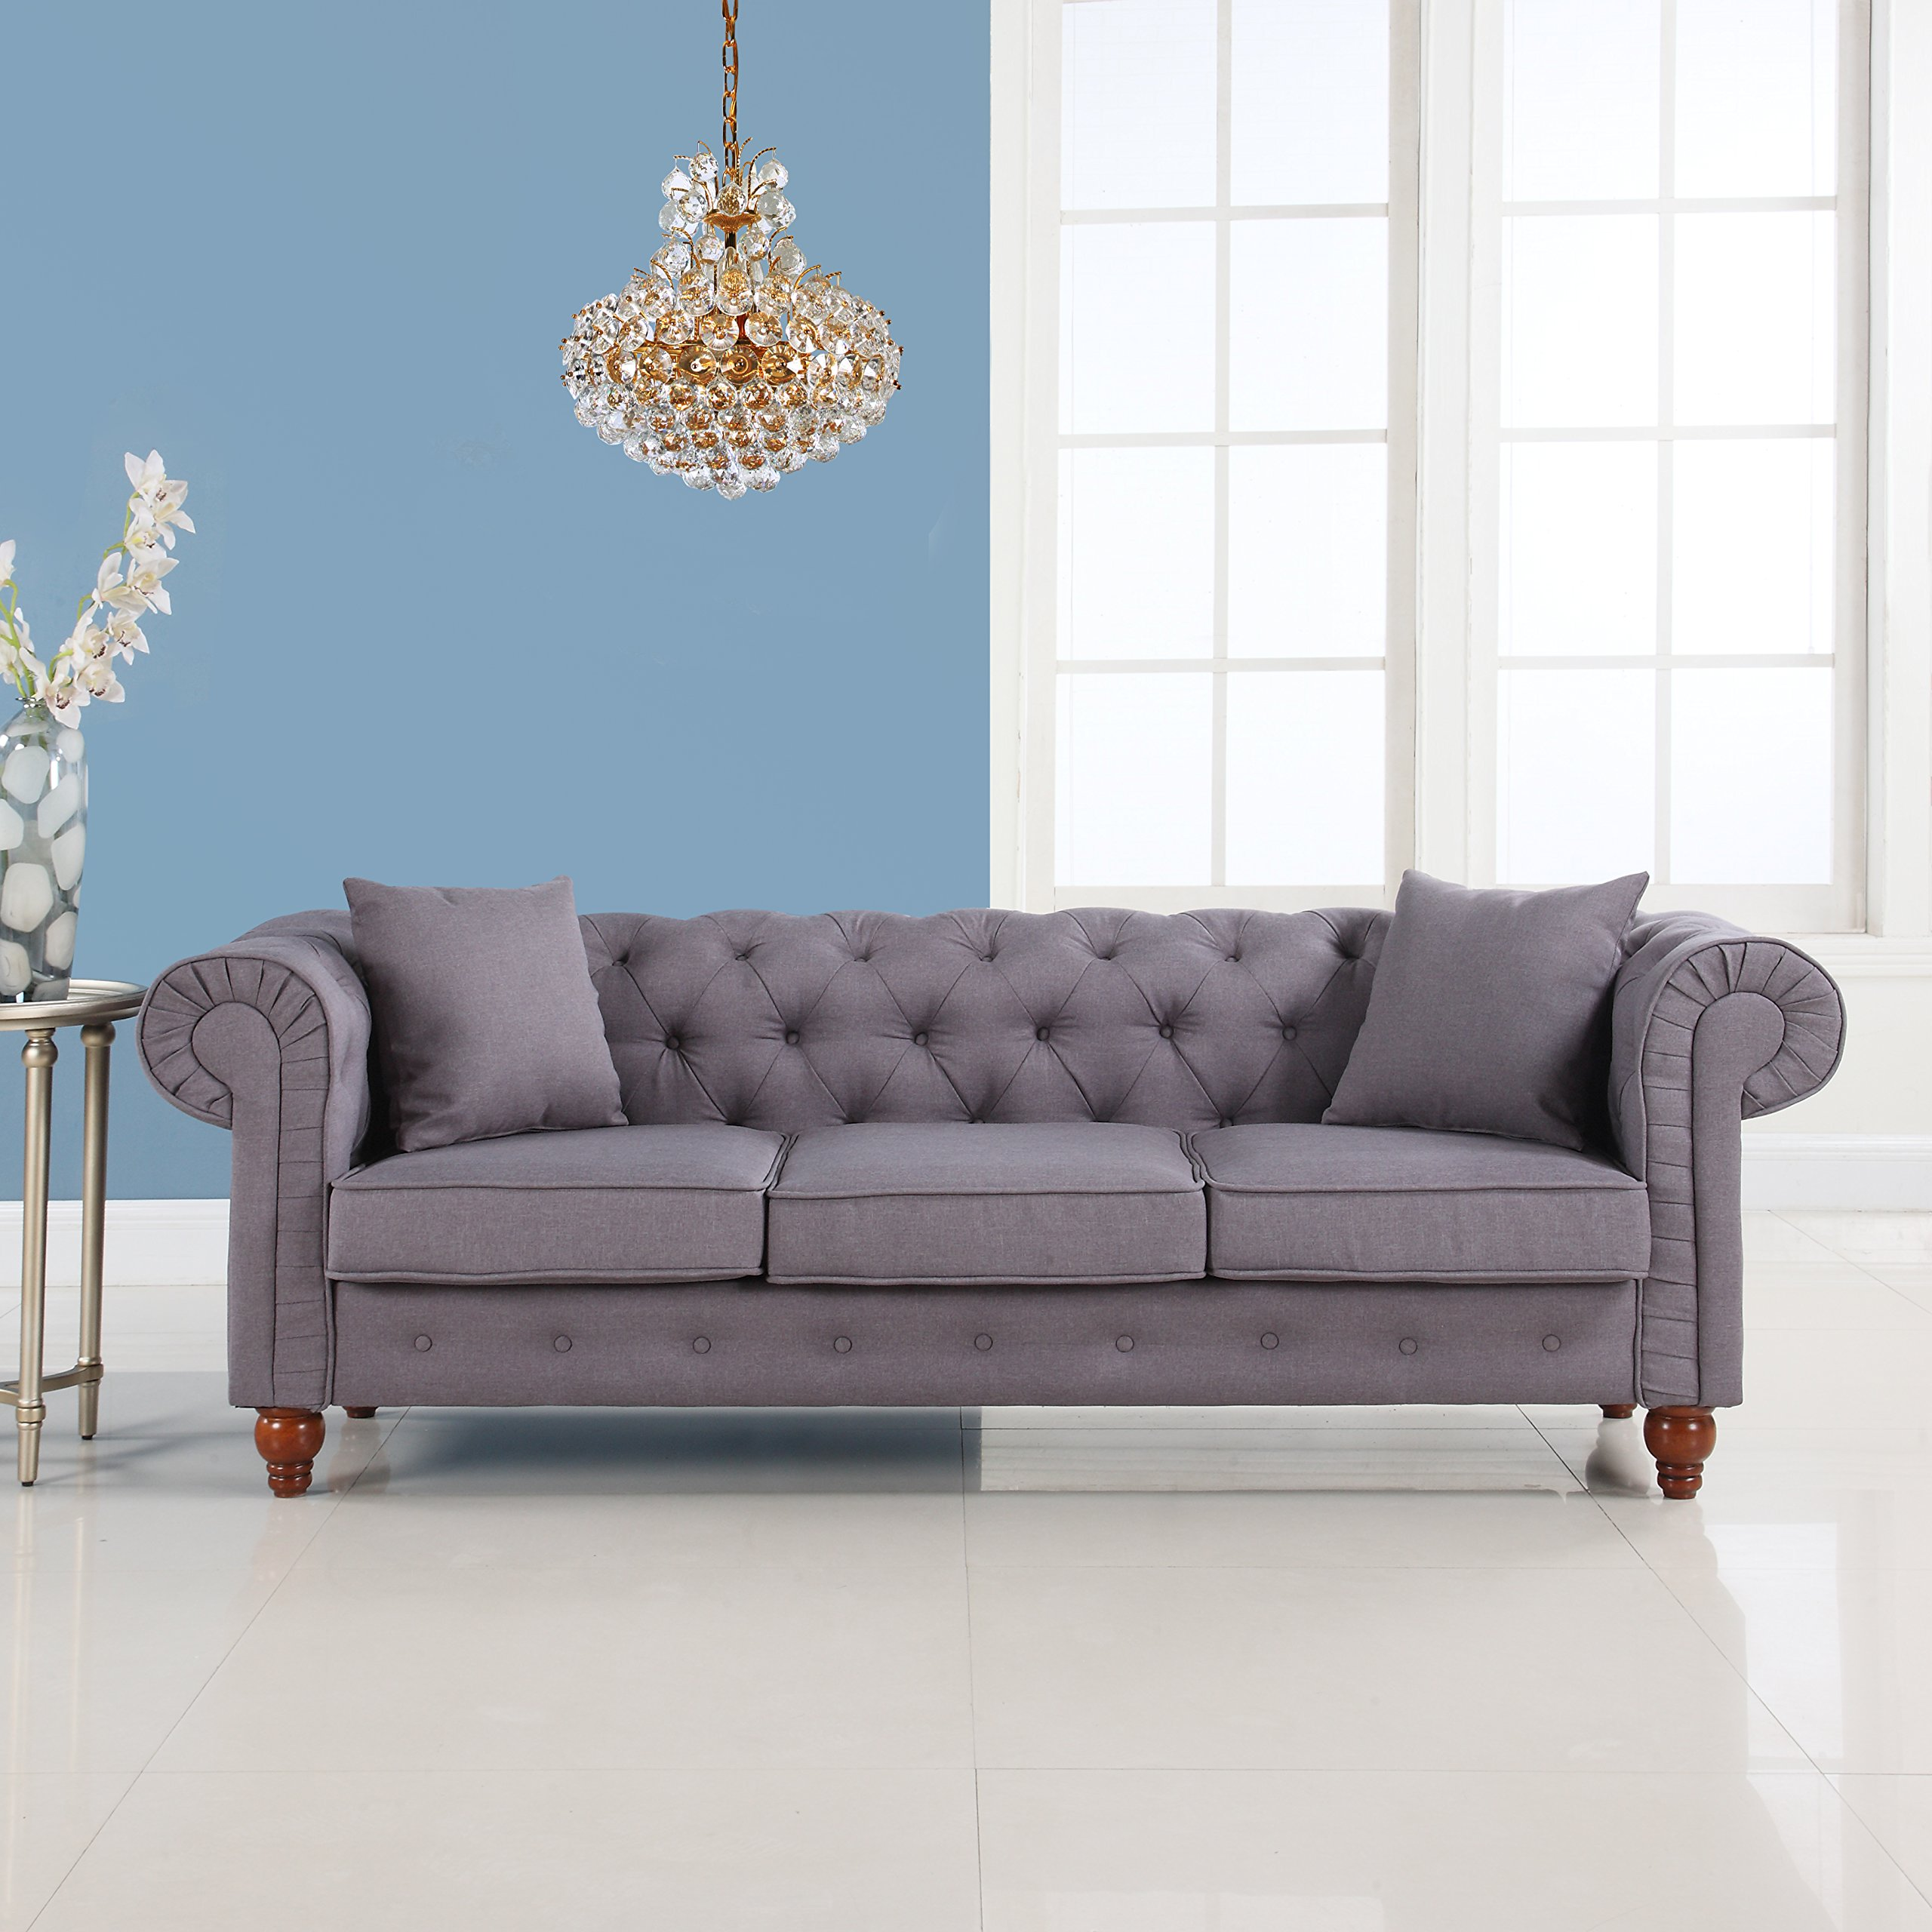 Get Quotations Clic Linen Fabric Scroll Arm Tufted On Chesterfield Style Sofa Dark Grey